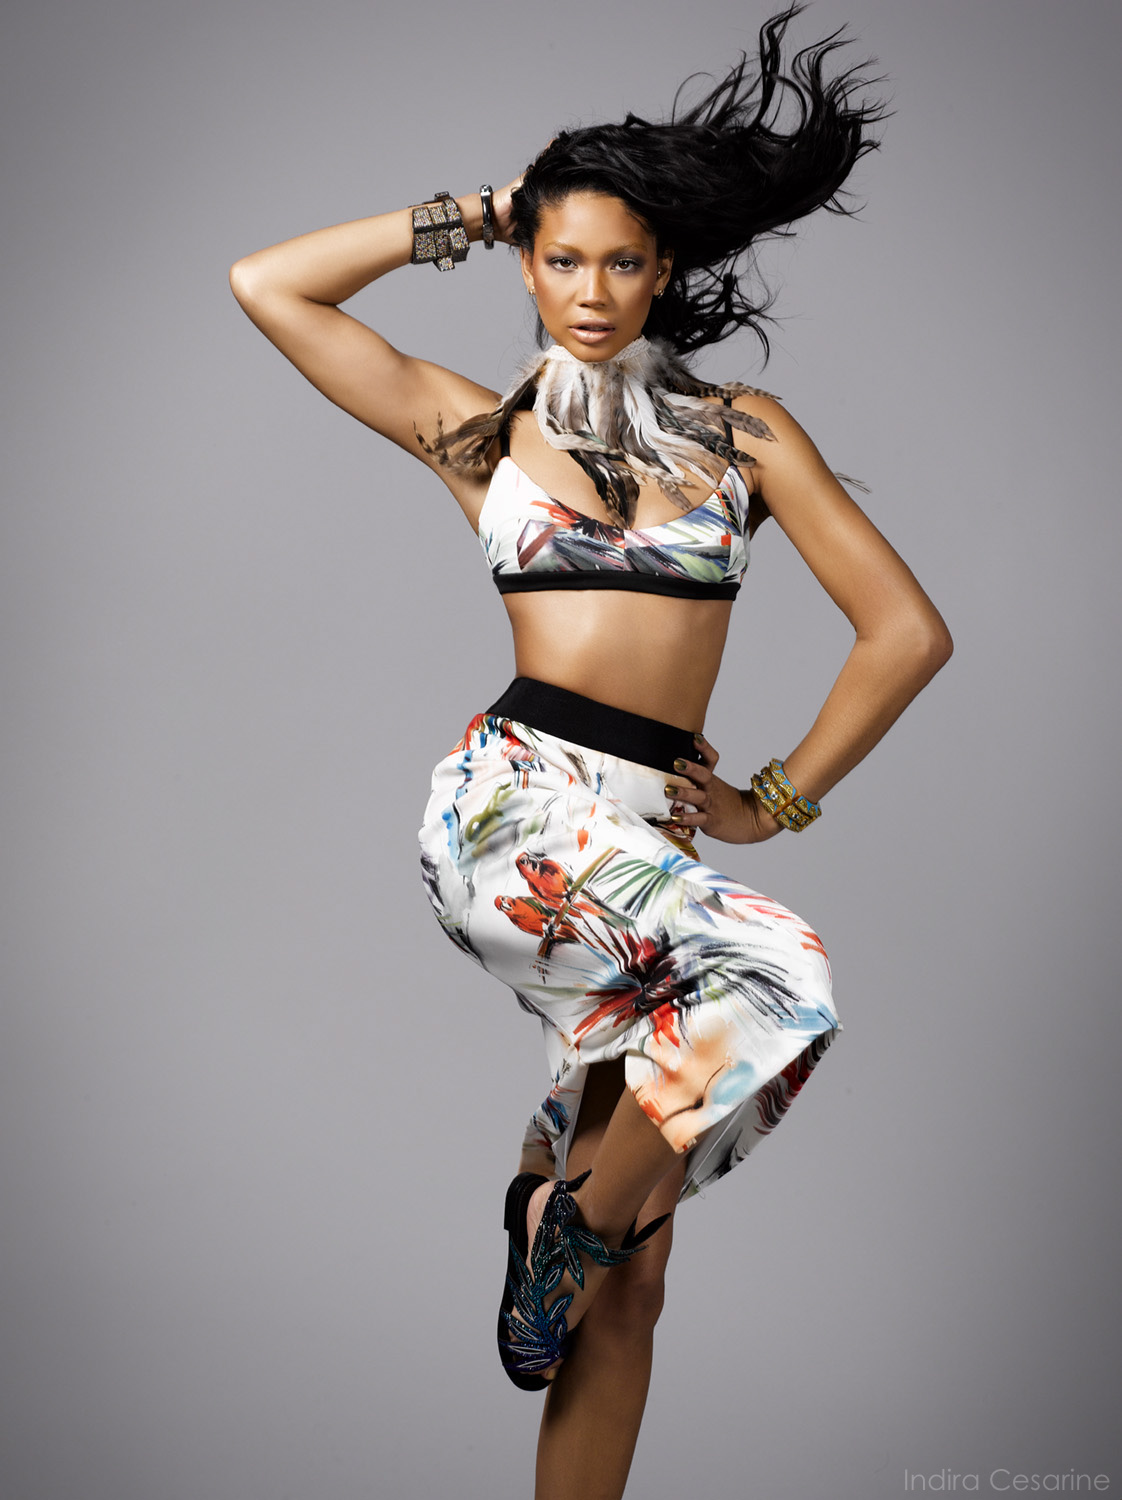 Chanel-Iman-Photography-by-Indira-Cesarine-002.jpg